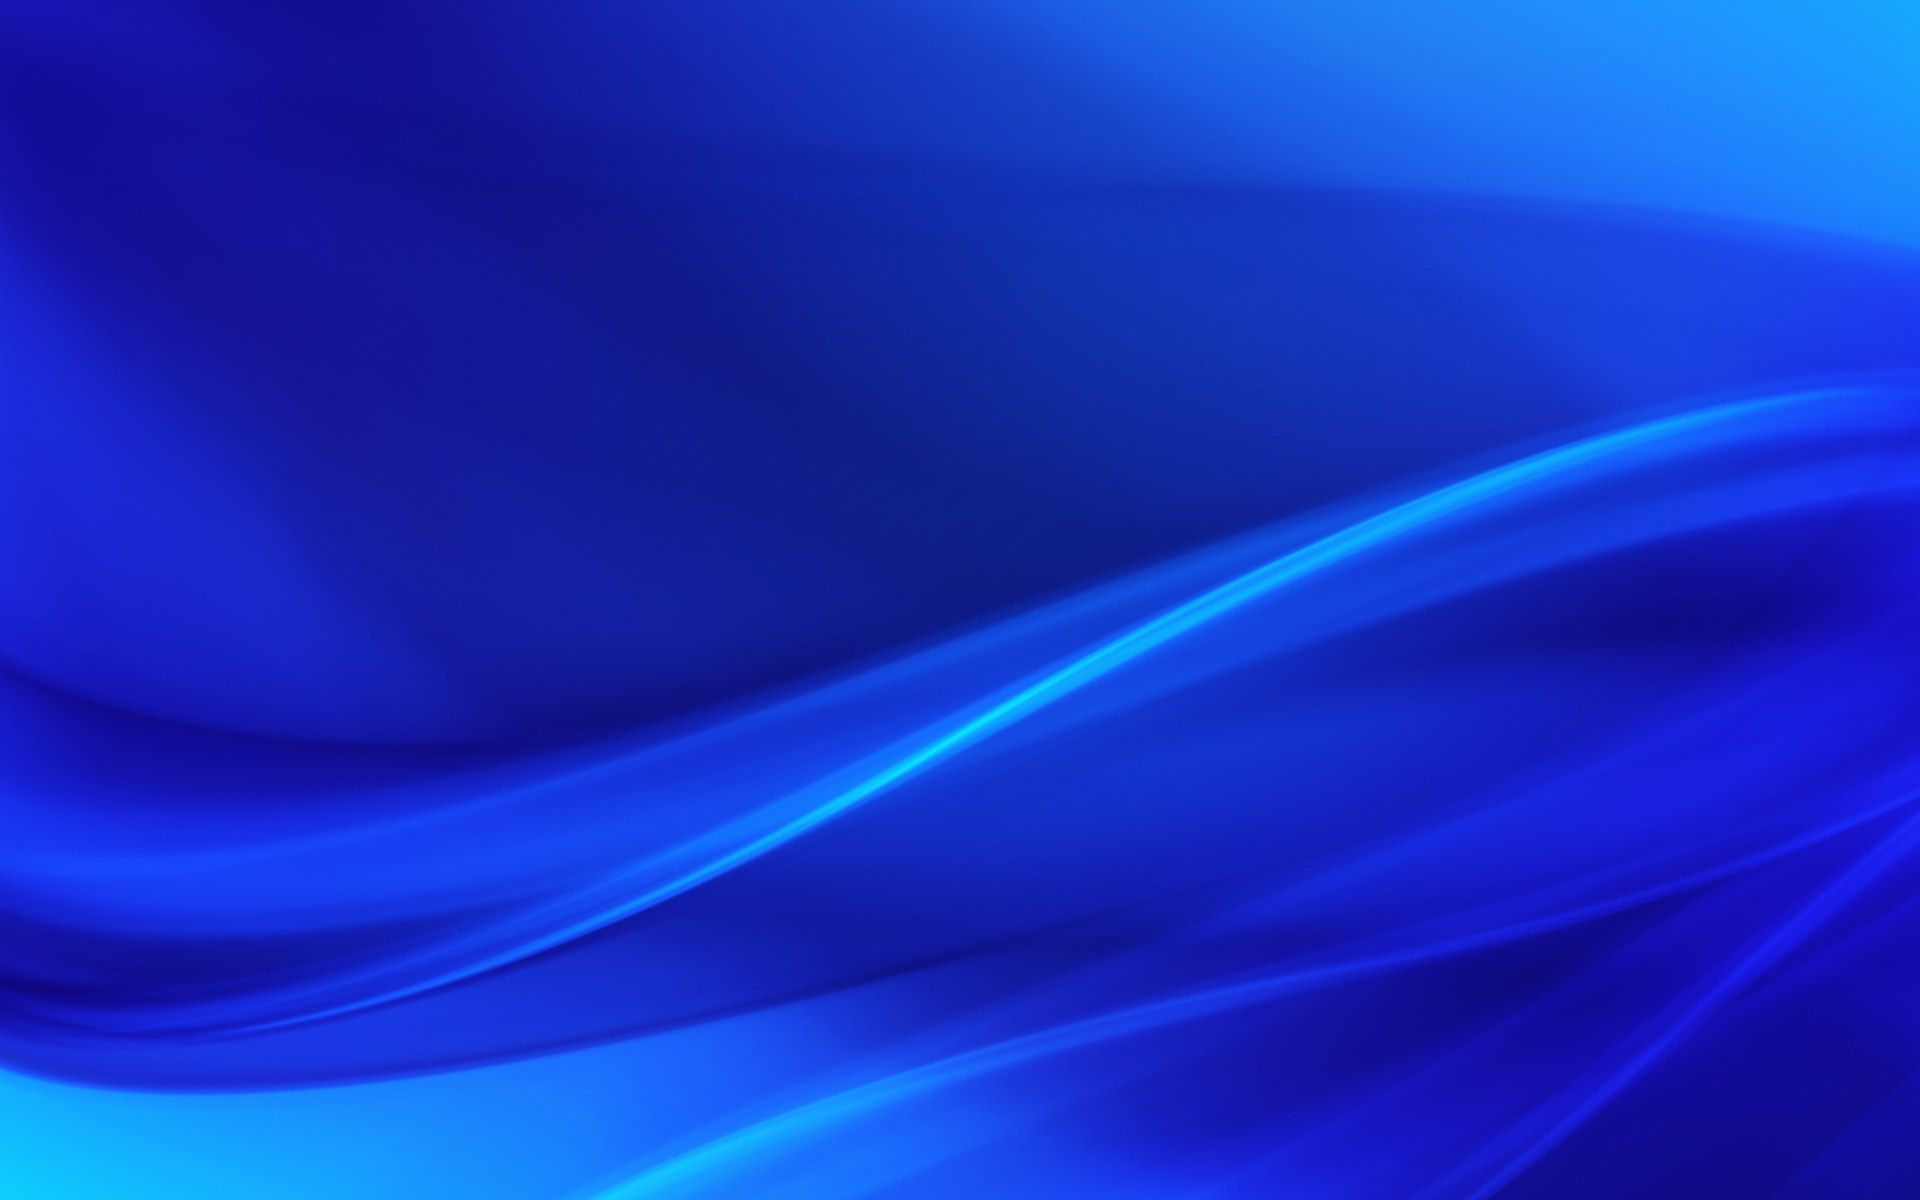 Abstract Blue Backgrounds 34 Wallpapers Hd Wallpapers 71451 Blue Background Wallpapers Blue Colour Wallpaper Blue Backgrounds